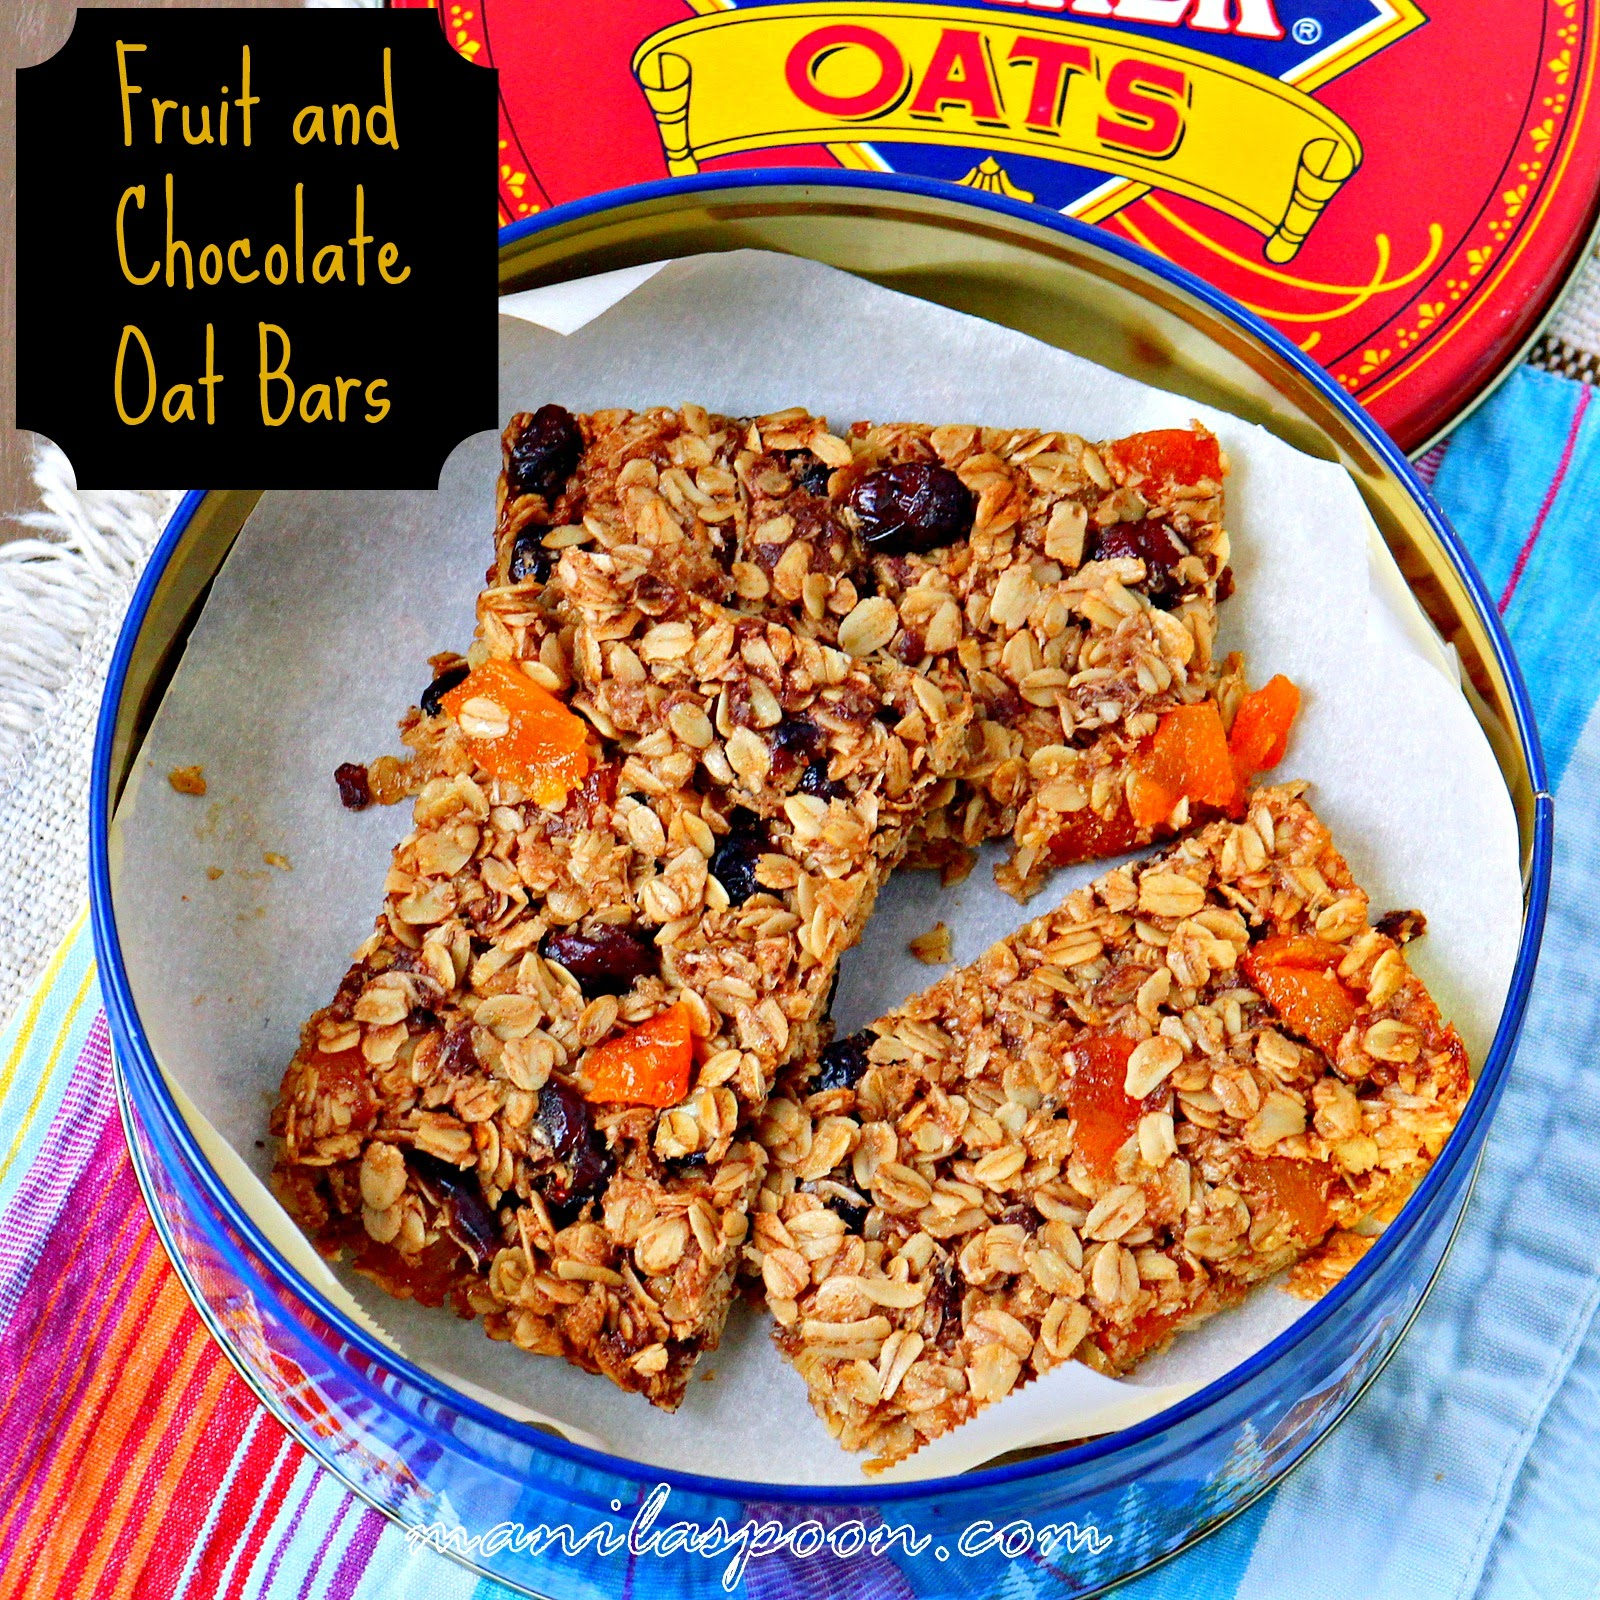 Fruit and Chocolate Oat Bars